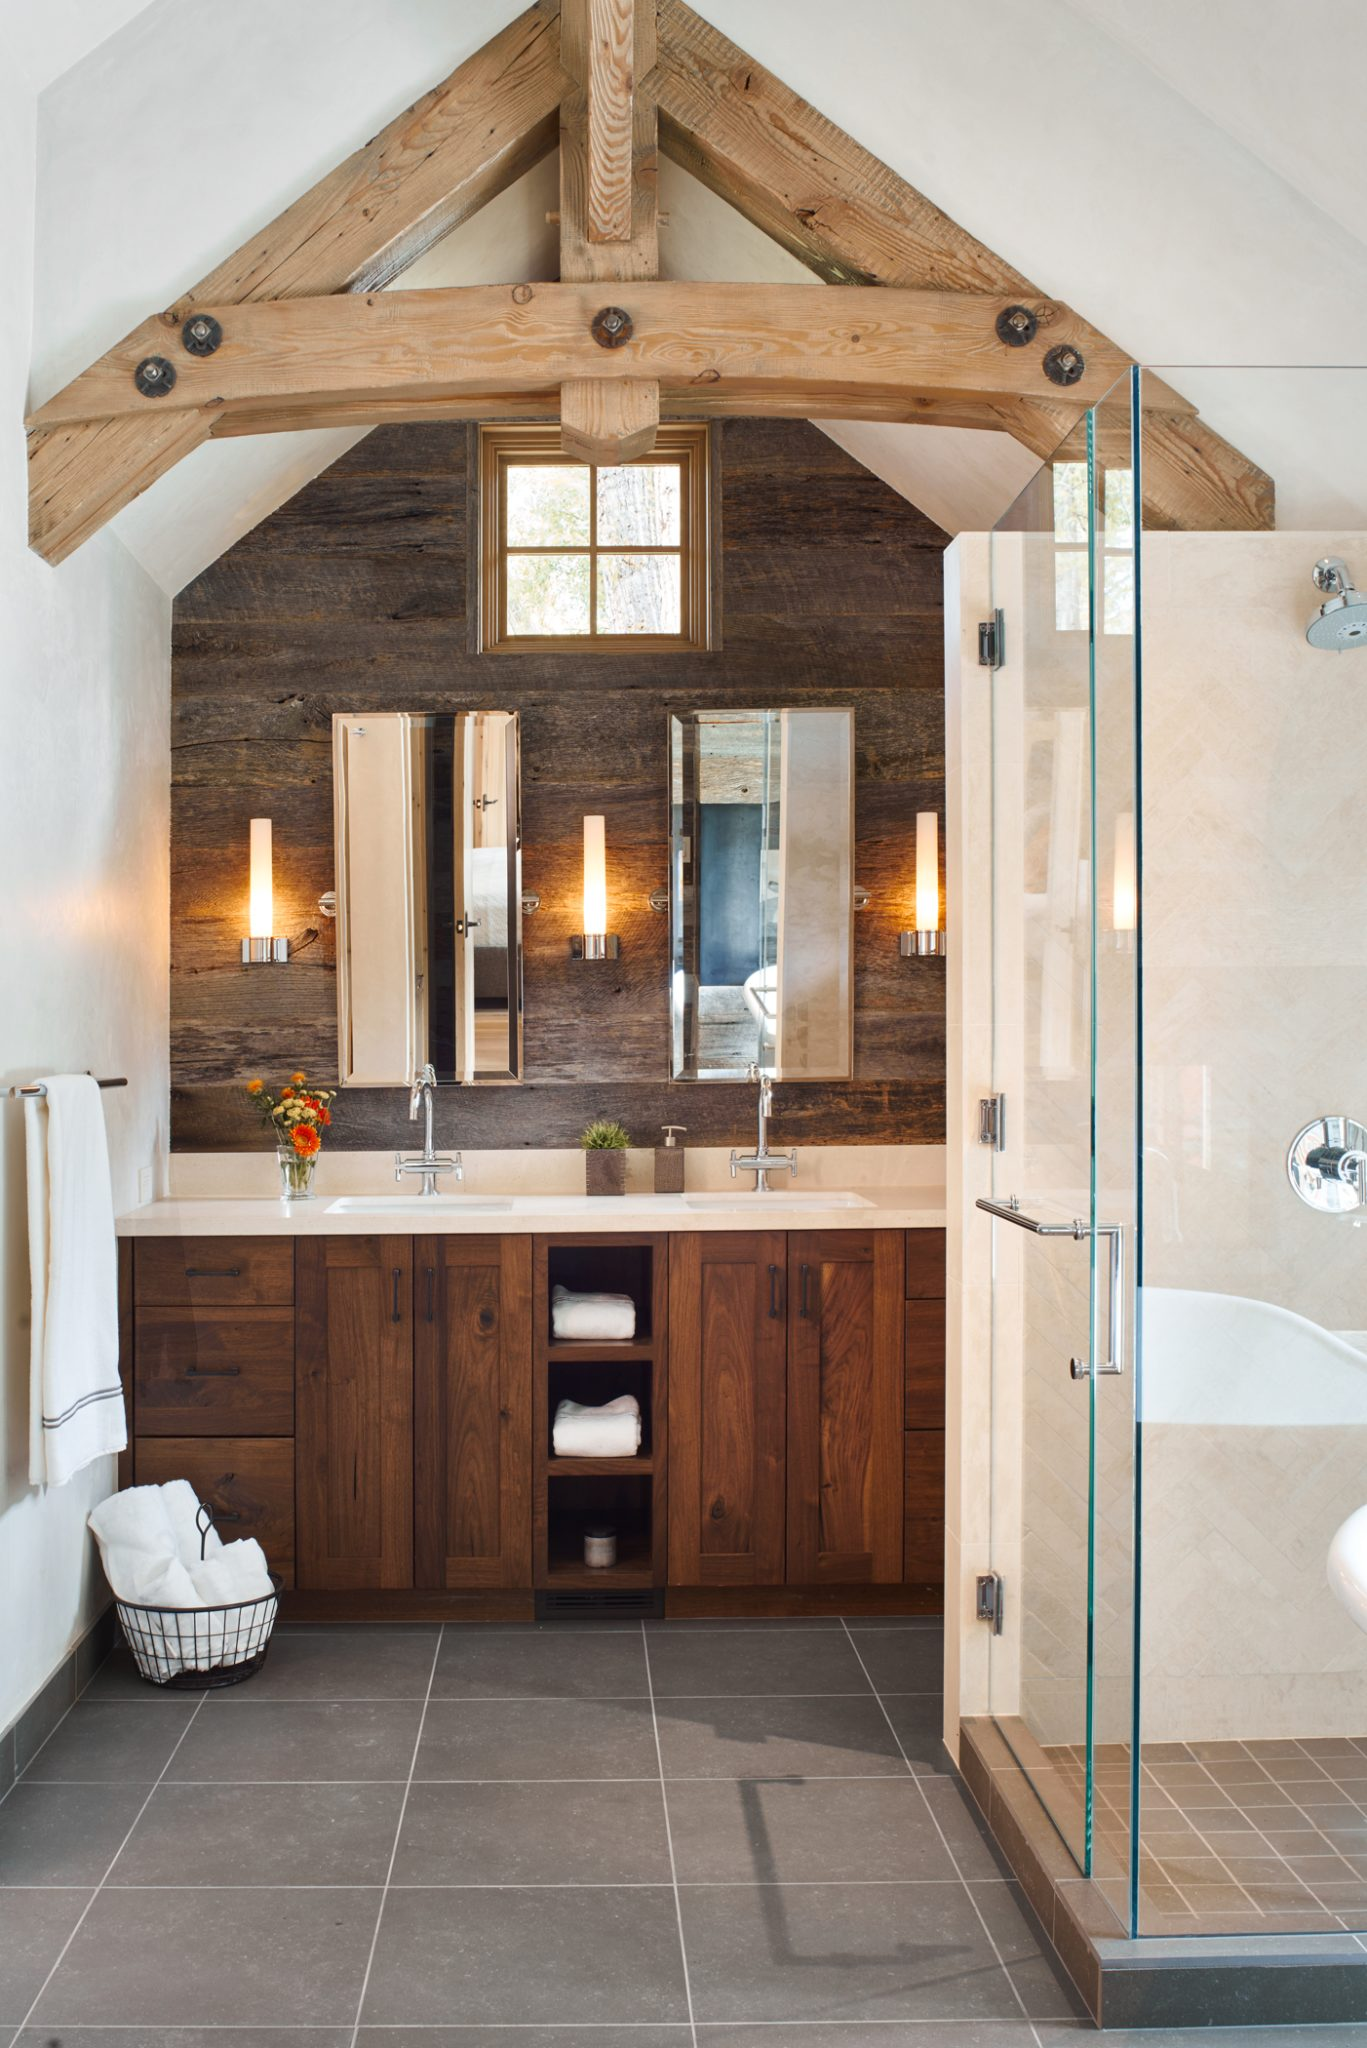 Mountain modern bath with light wood ceiling beams, glass shower & wood vanity. by Brewster McLeod Architects